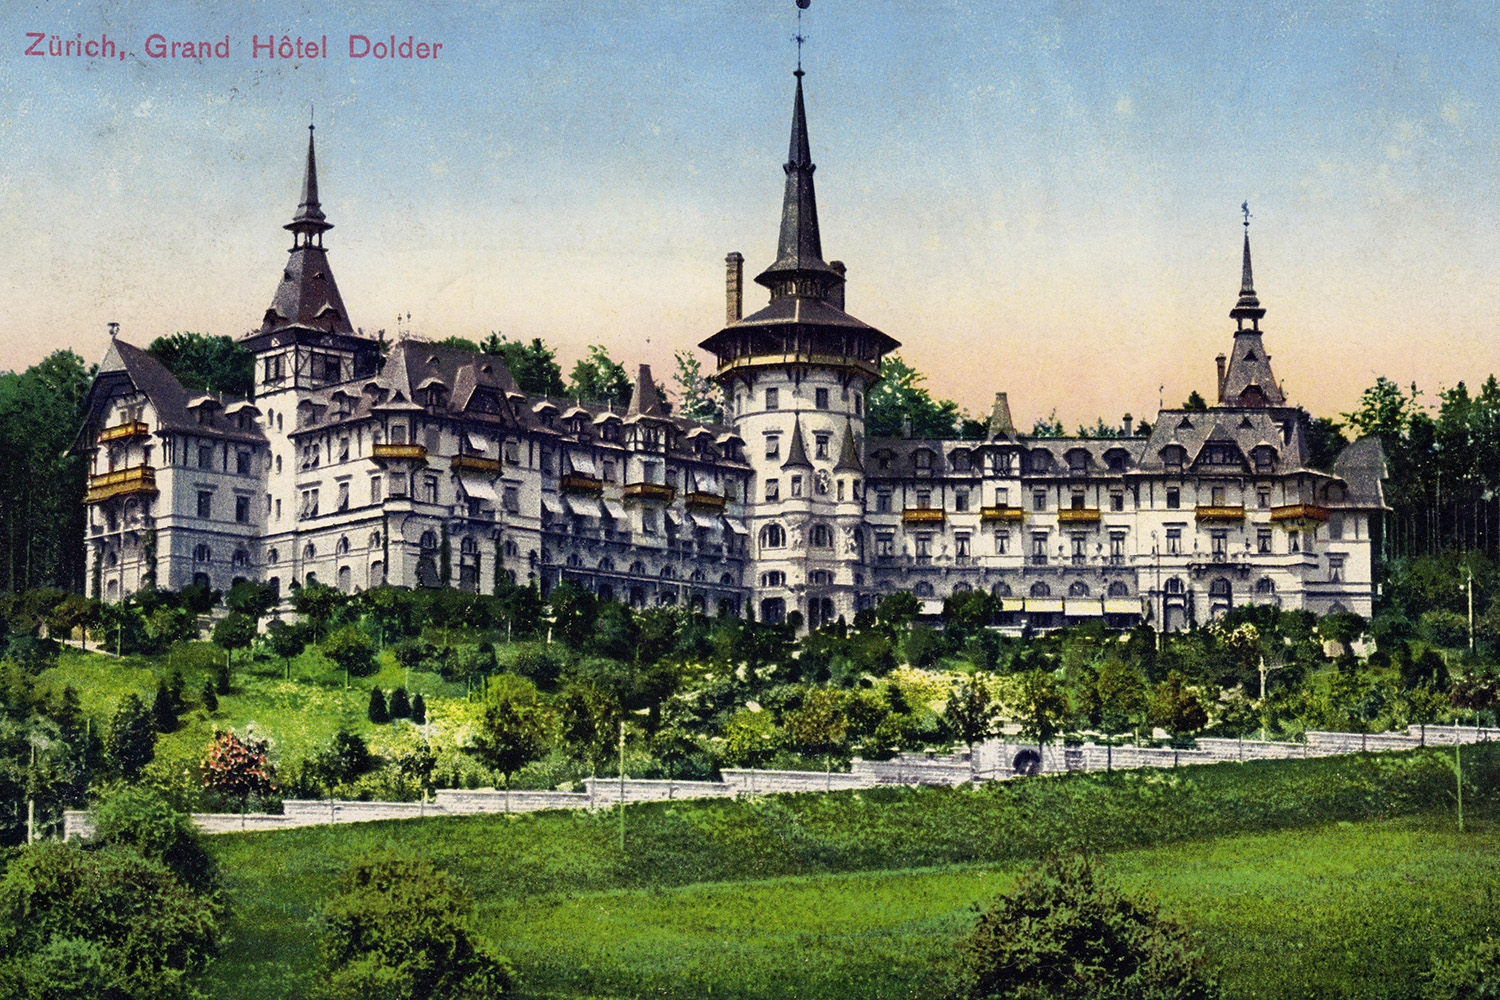 Switzerland's Nation of Hoteliers